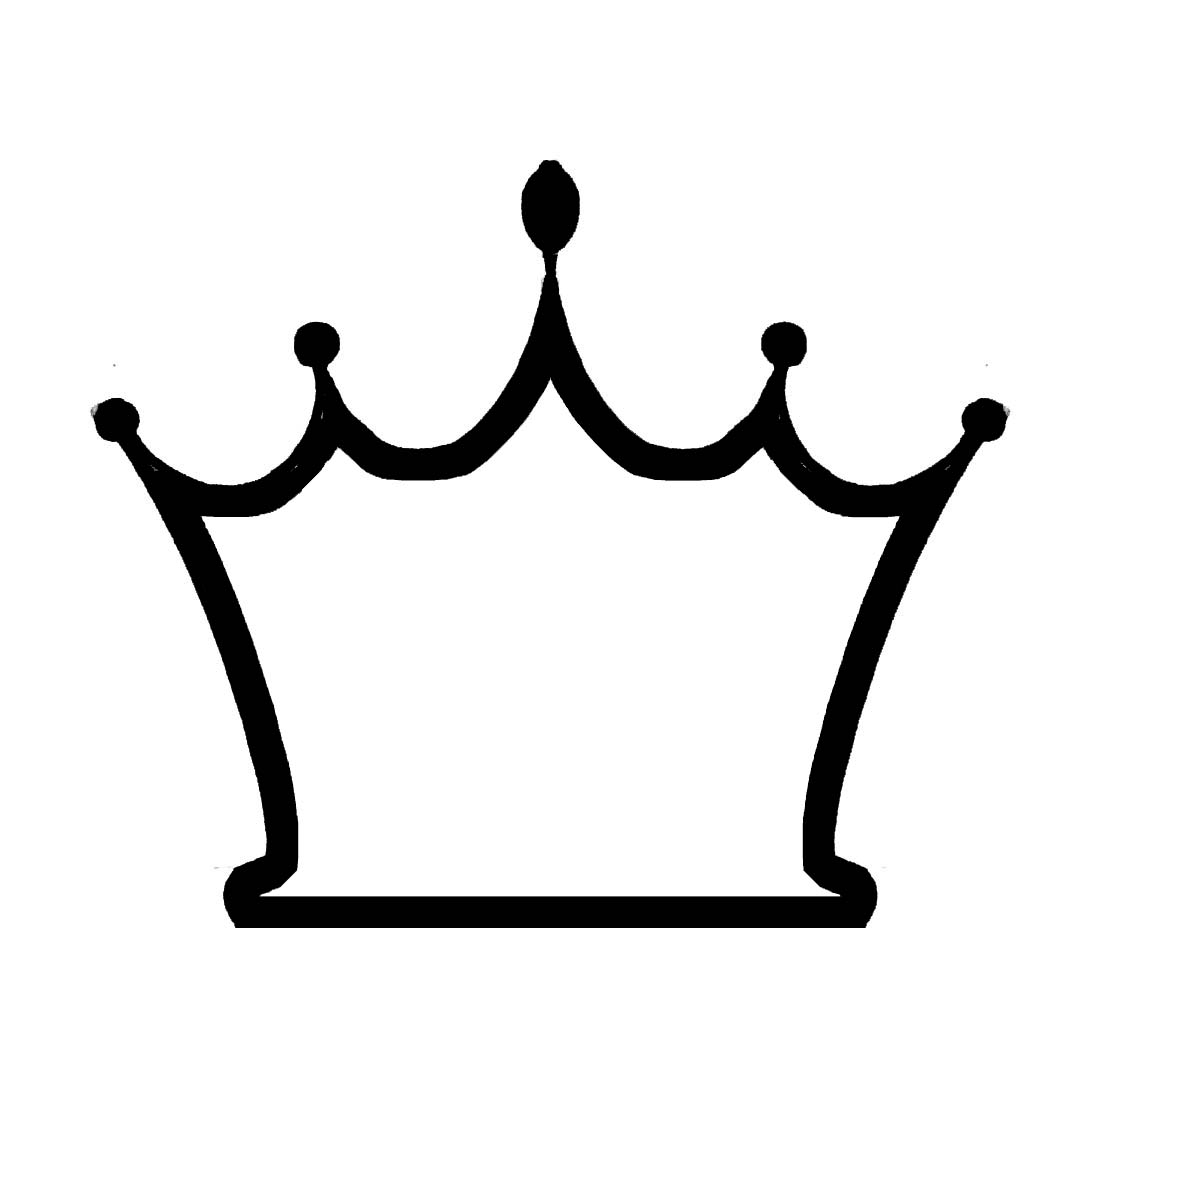 Images for gt cinderella princess clipart black and white - Crown 20clip 20art 20outline